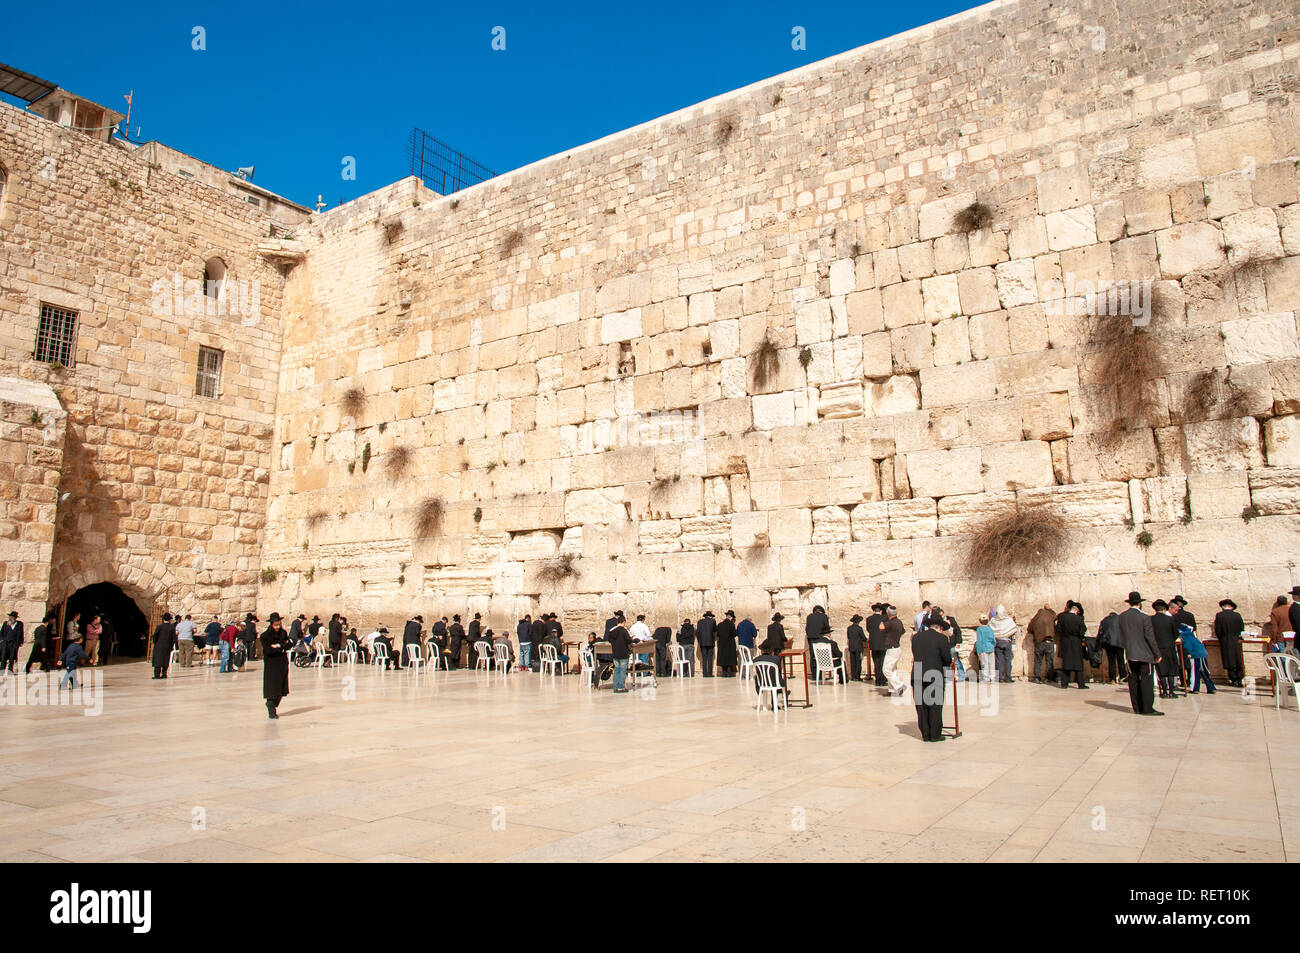 Orthodox Jews praying at the Western Wall, Jerusalem, Israel - Stock Image